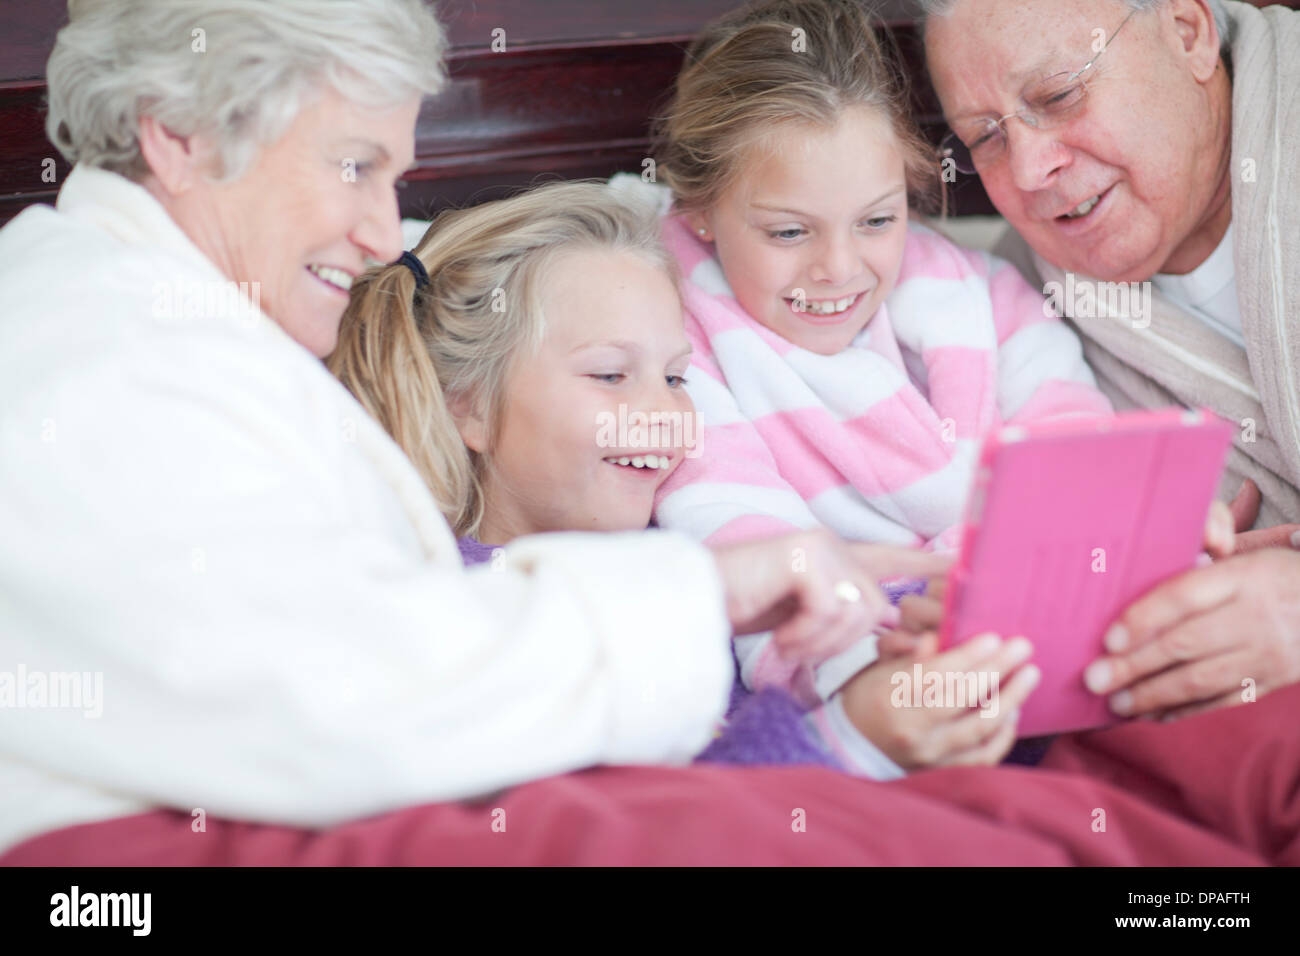 Grandparents and grandchildren playing digital game in bed - Stock Image